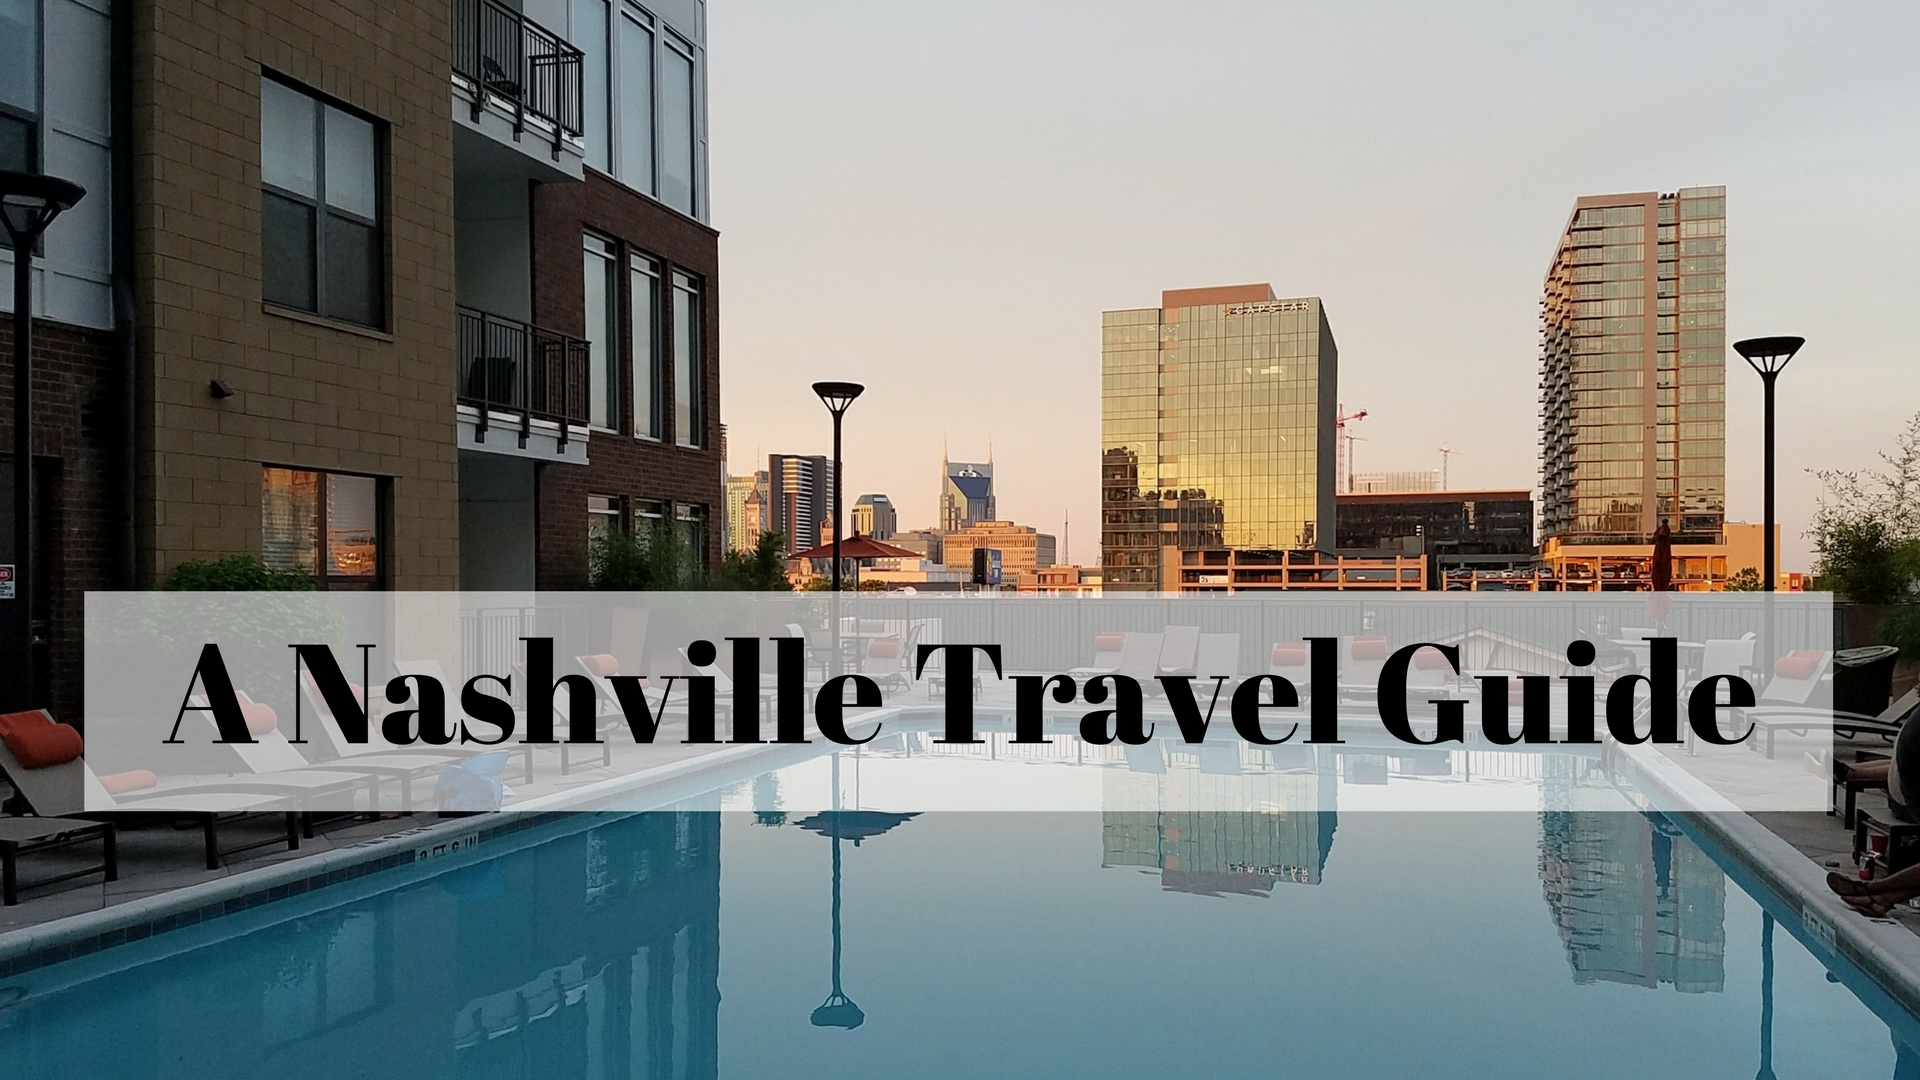 images?q=tbn:ANd9GcQh_l3eQ5xwiPy07kGEXjmjgmBKBRB7H2mRxCGhv1tFWg5c_mWT See Media Nashville Travel Guides Trend 2020 @capturingmomentsphotography.net